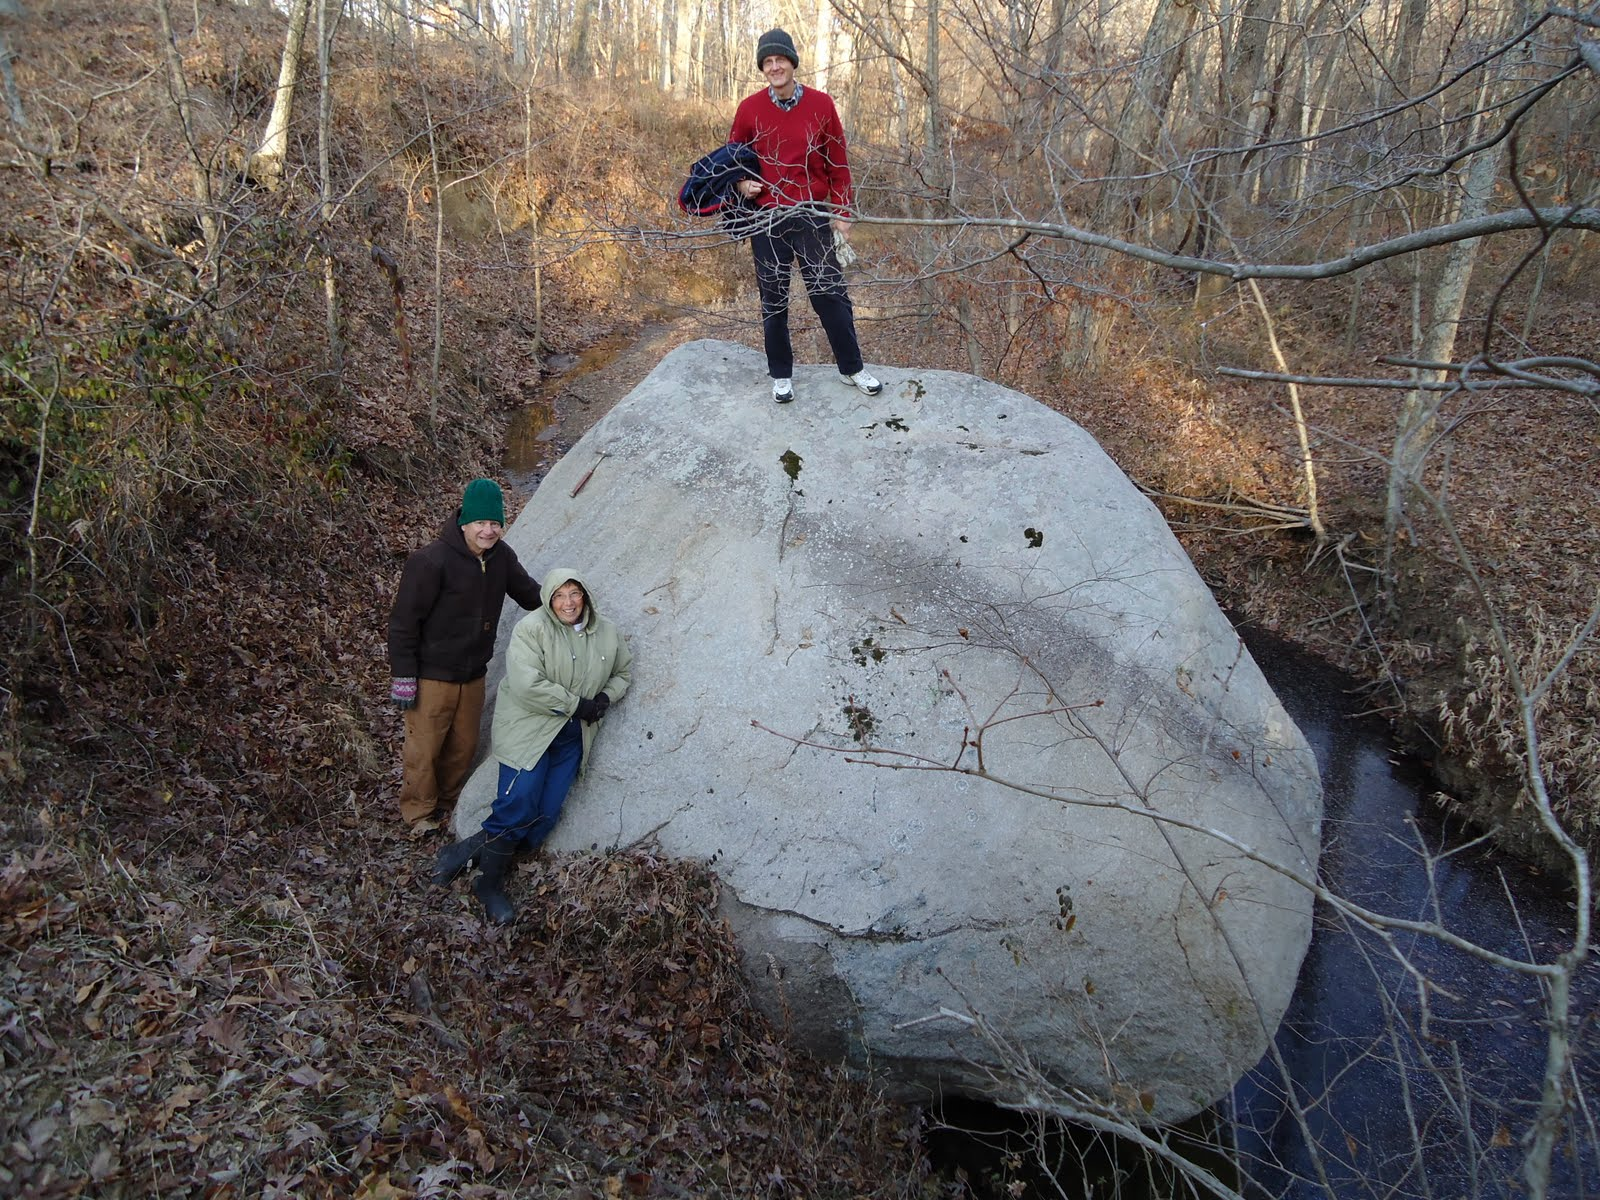 Illinois jefferson county ina - The Boulder Waite Showed Them Now Rests In A Creek Bottom About Half A Mile S Walk From The House Where He And His Wife Sarah Live On Property That Has